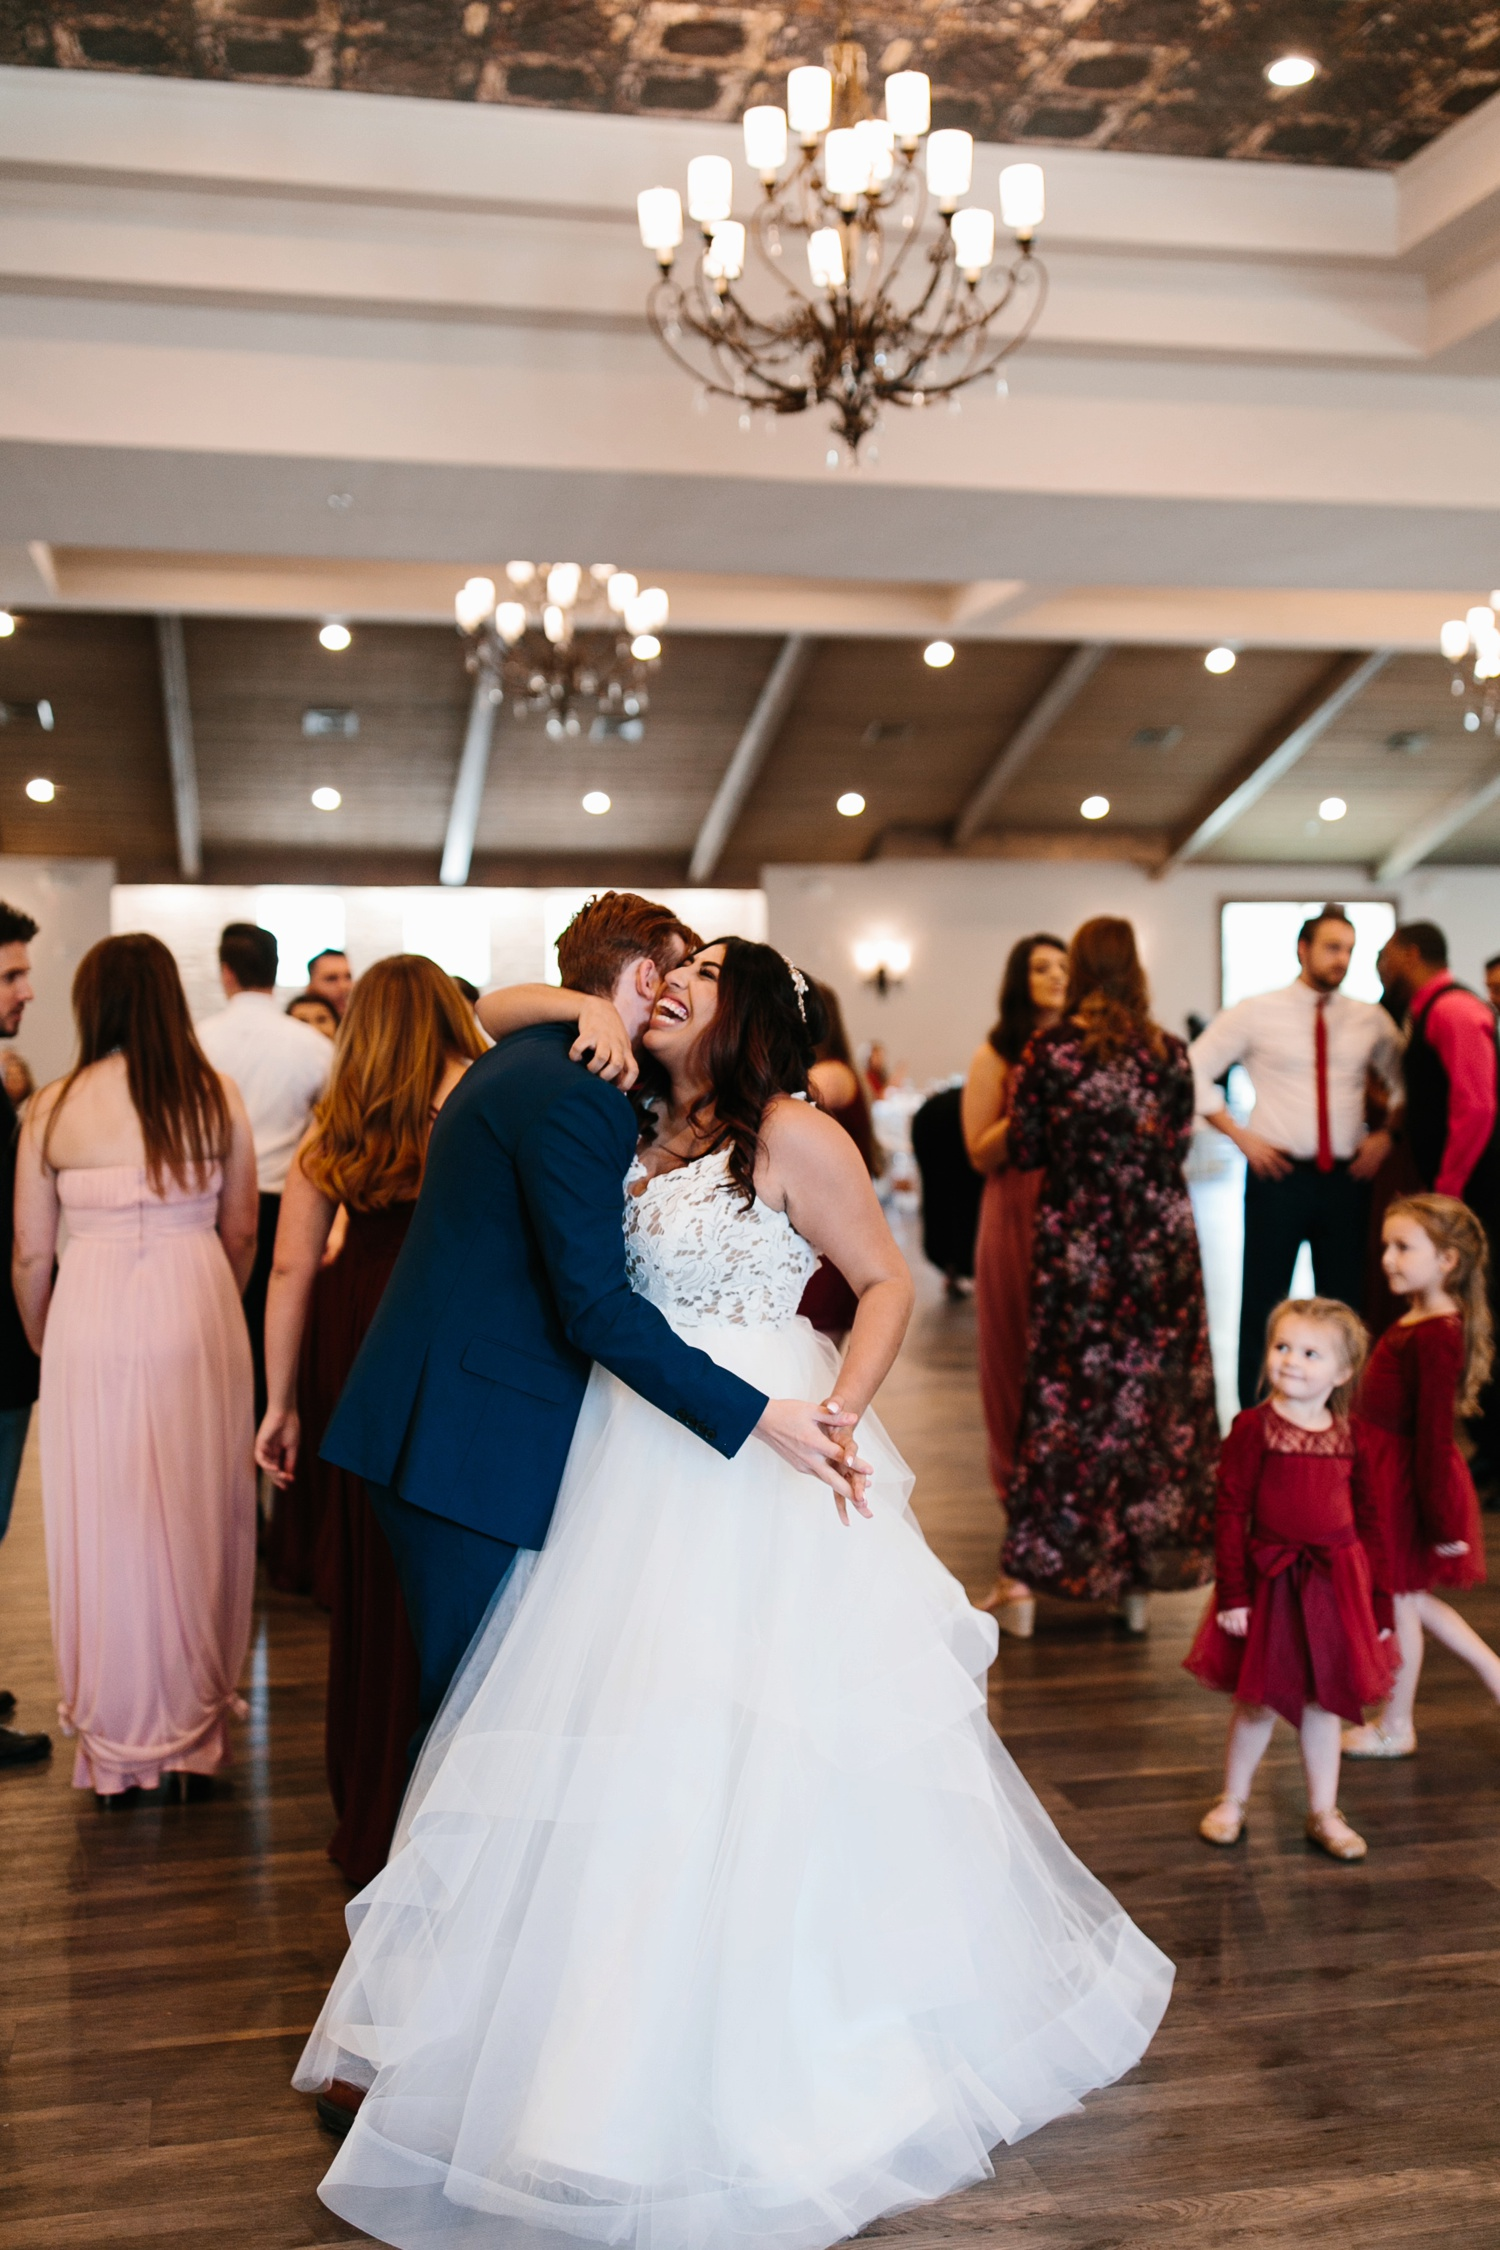 Grant + Lysette | a vibrant, deep burgundy and navy, and mixed metals wedding at Hidden Pines Chapel by North Texas Wedding Photographer Rachel Meagan Photography 169